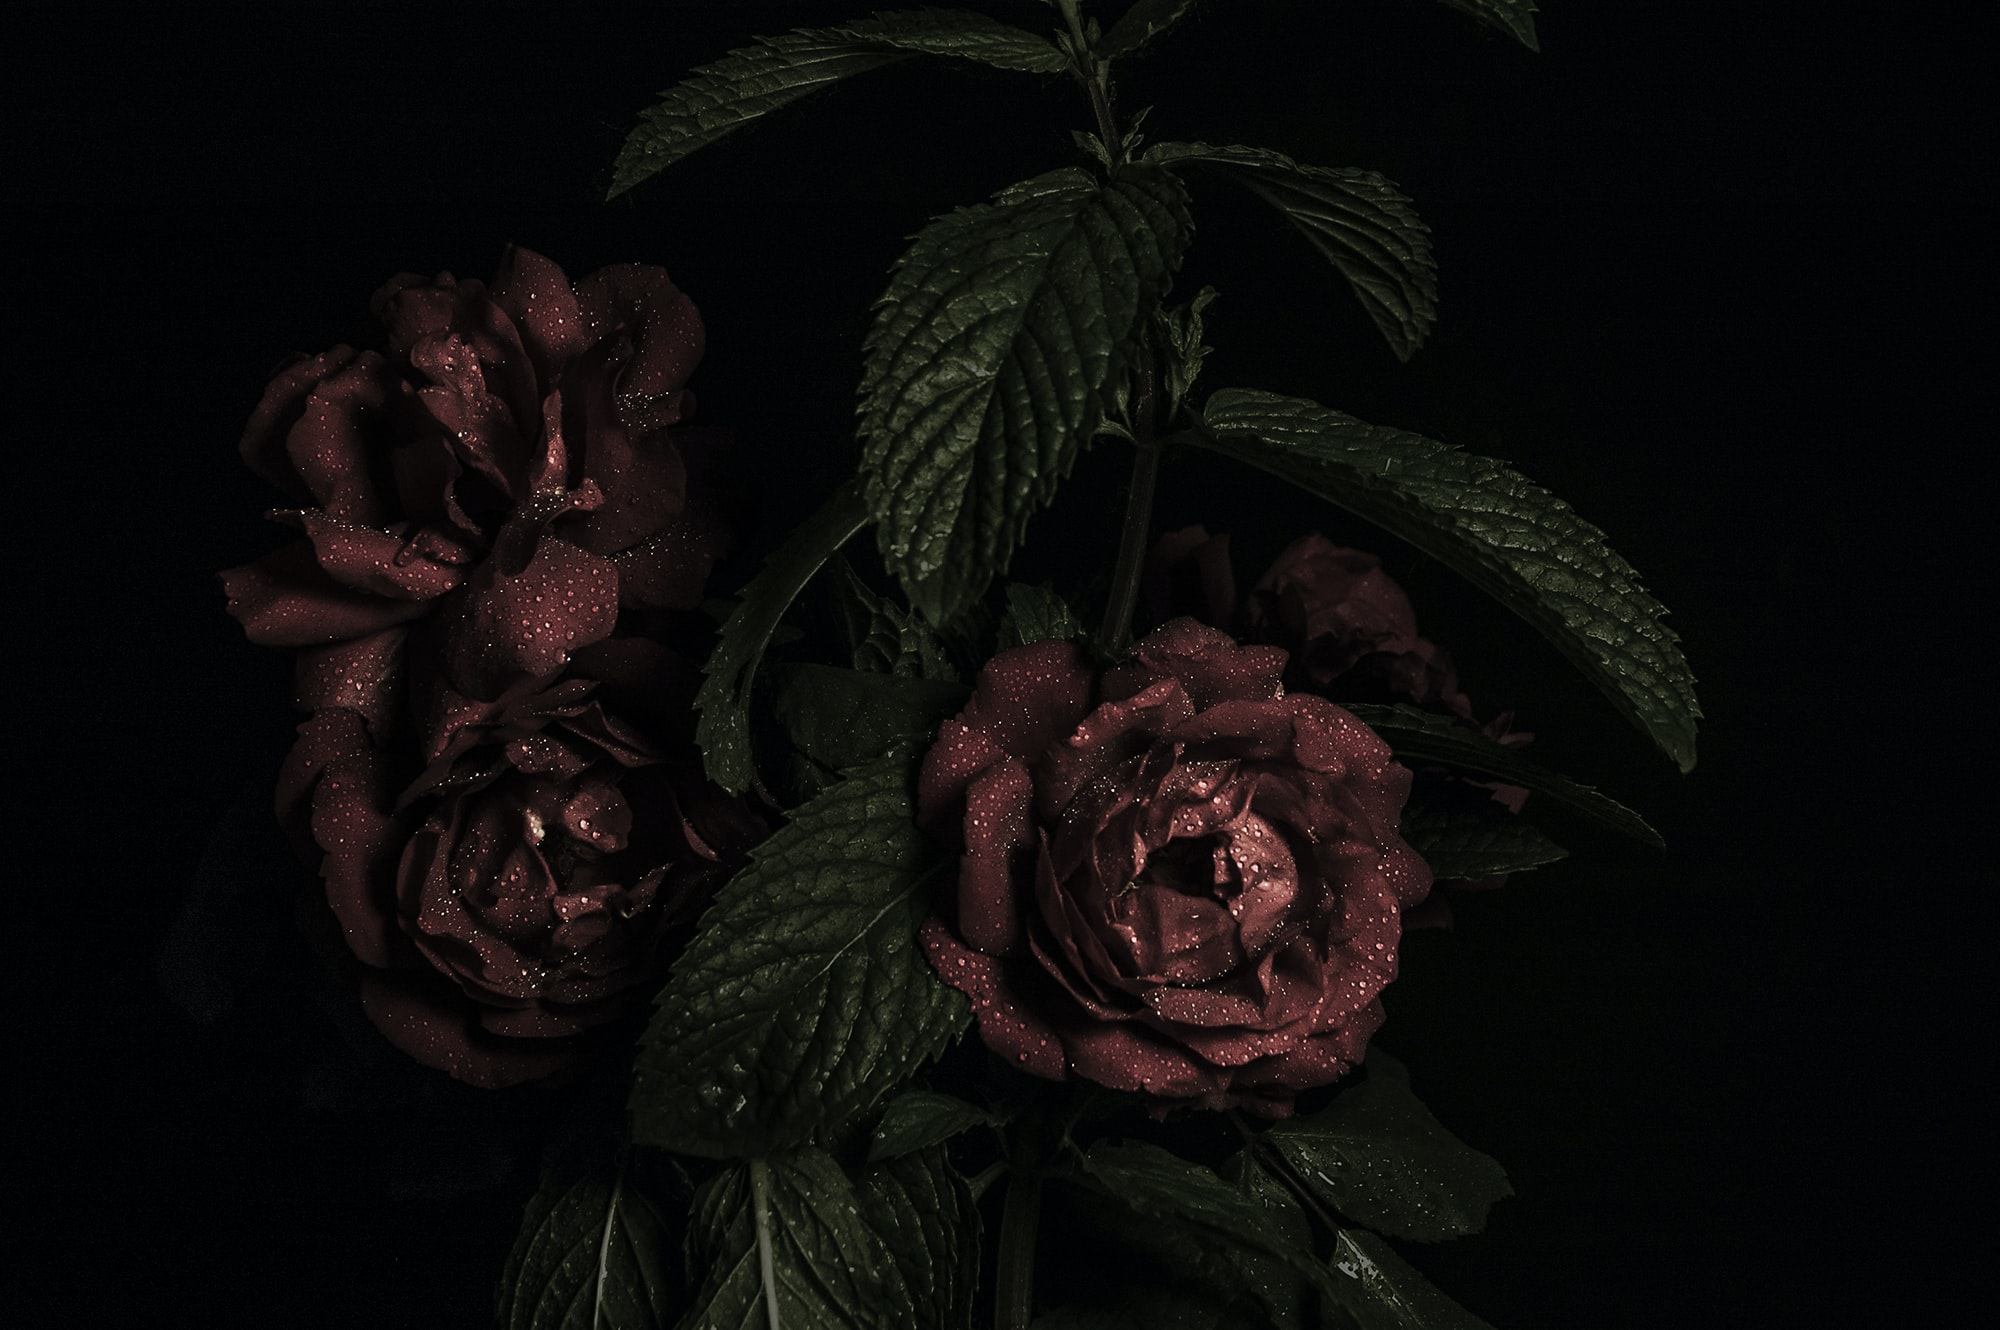 A dim shot of dark red roses covered in water droplets